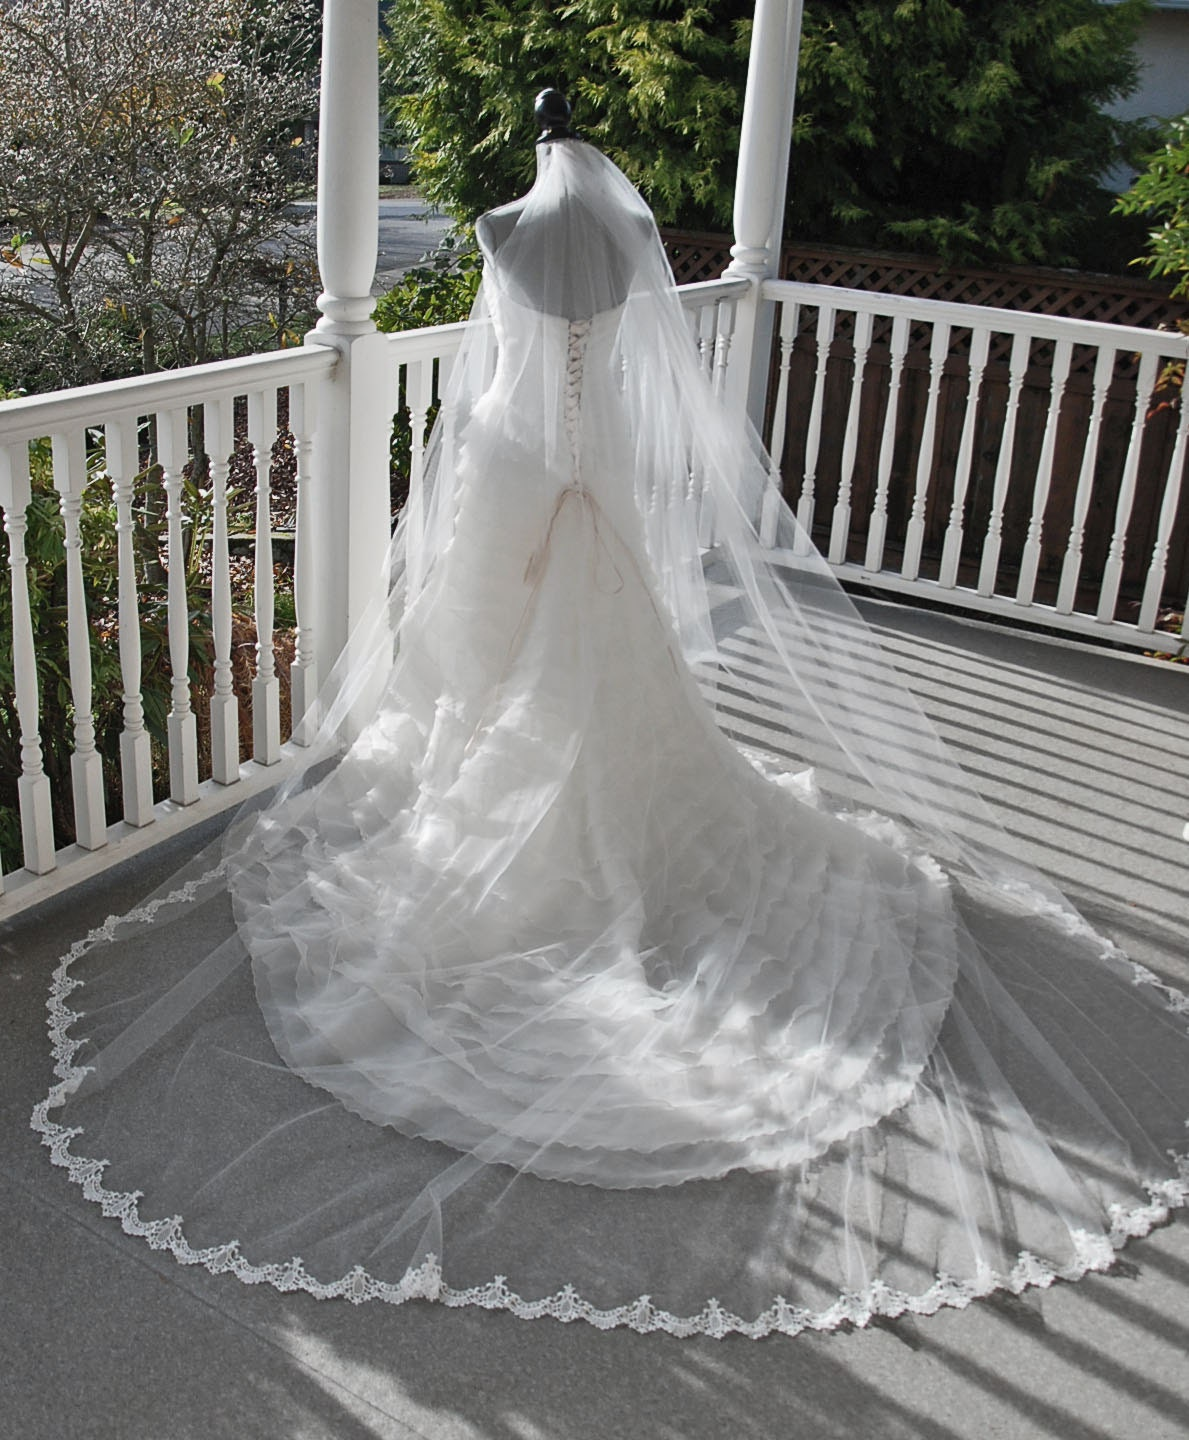 Diamond White Cathedral Length Lace Edged Veilcathedral Veil With Edgewedding